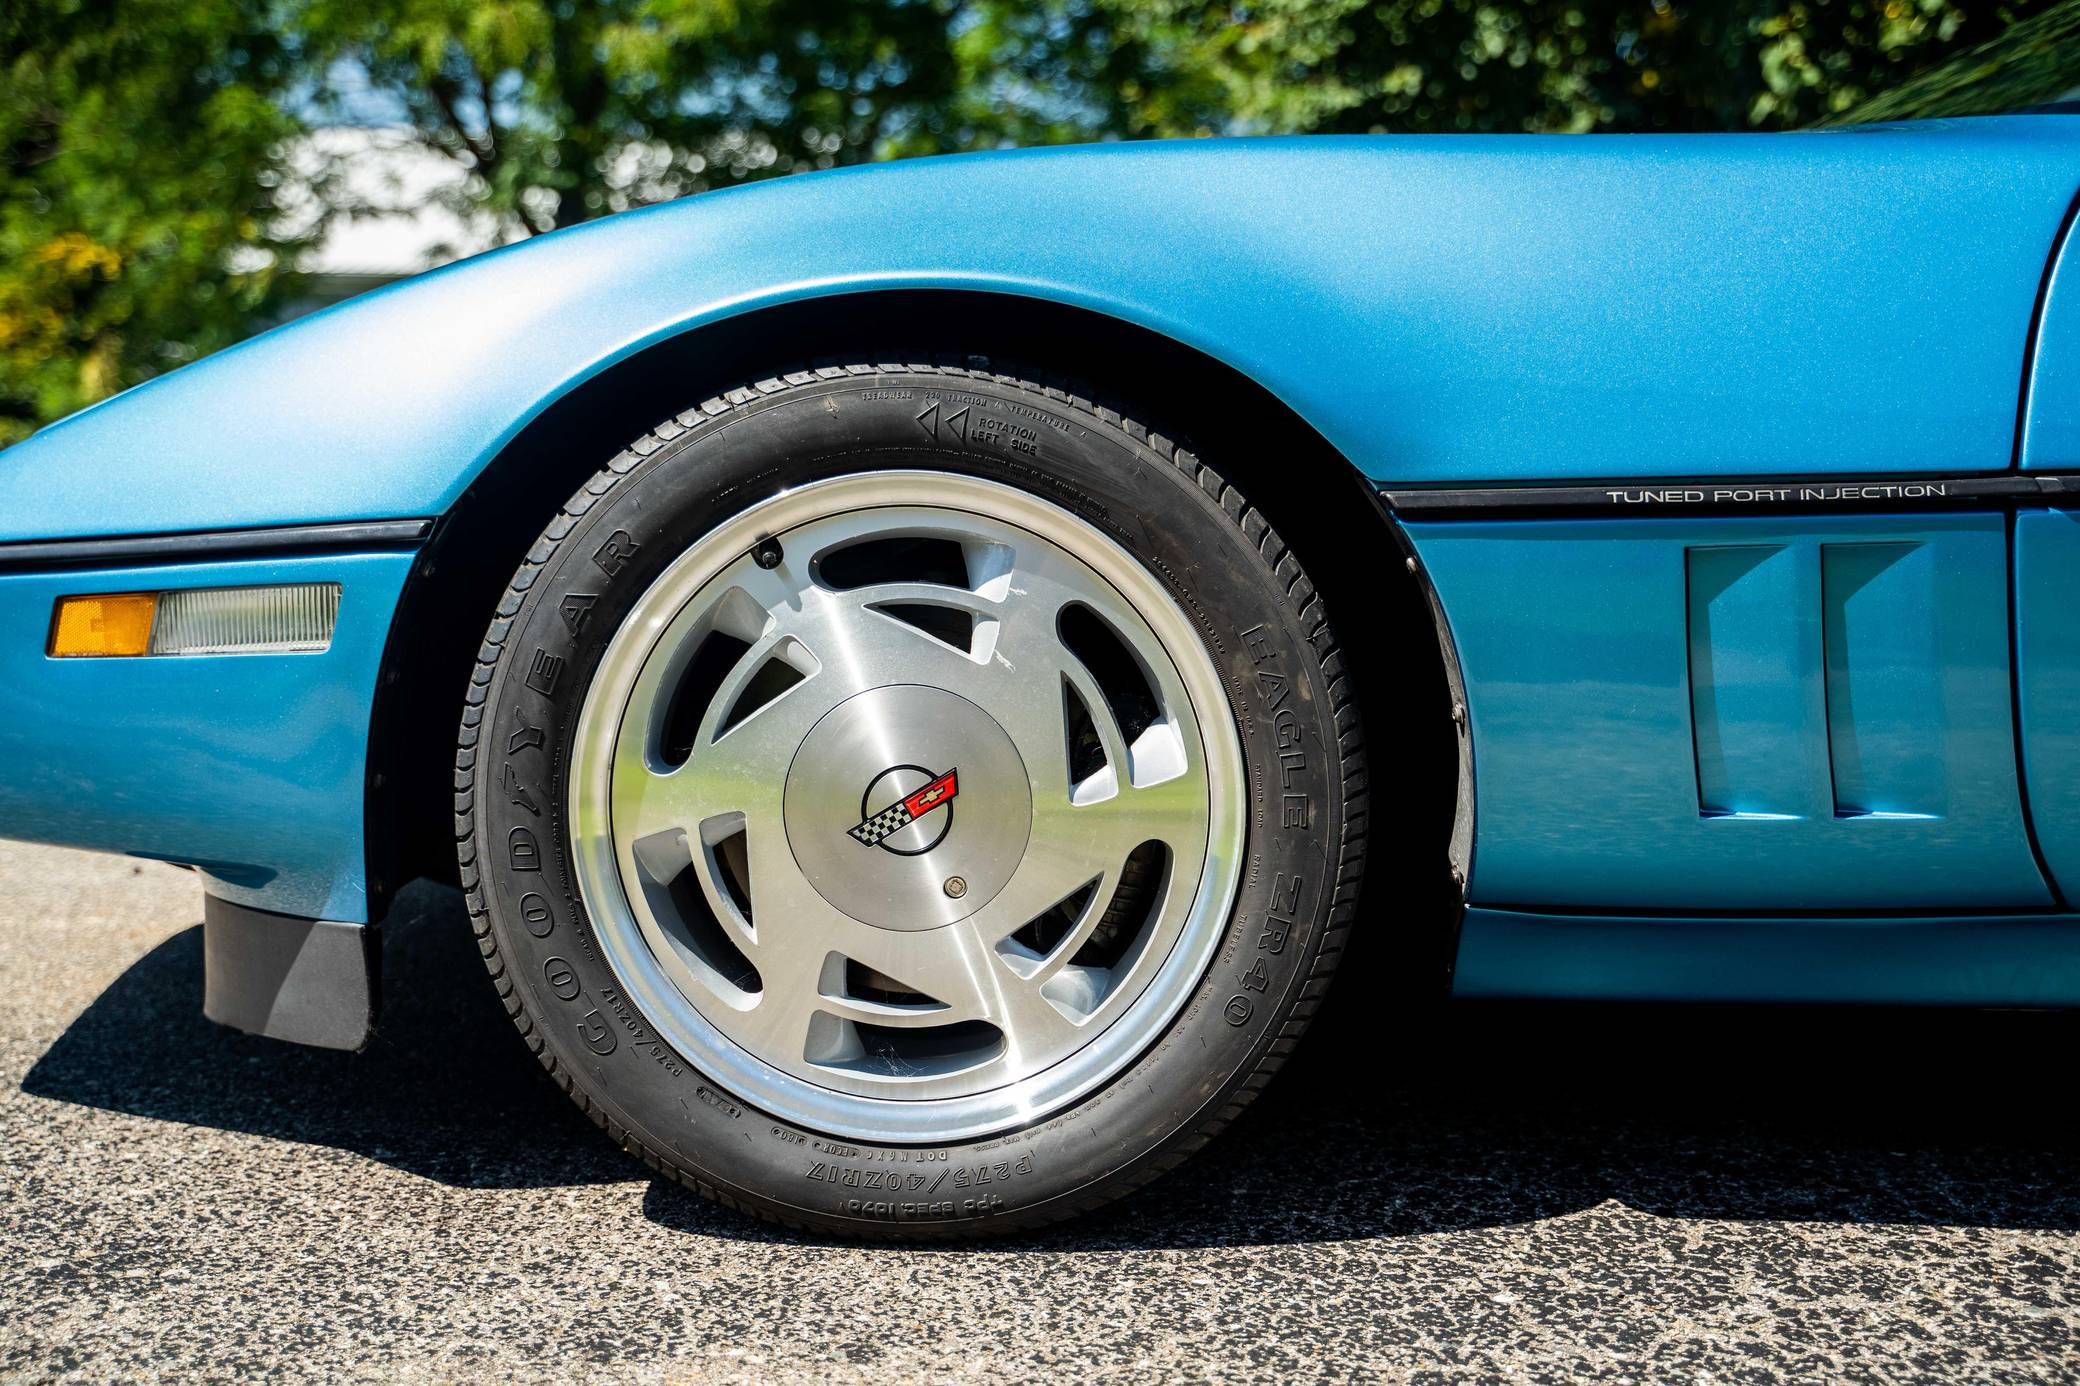 Chevy Vette King of the Hill Prototype front wheel detail